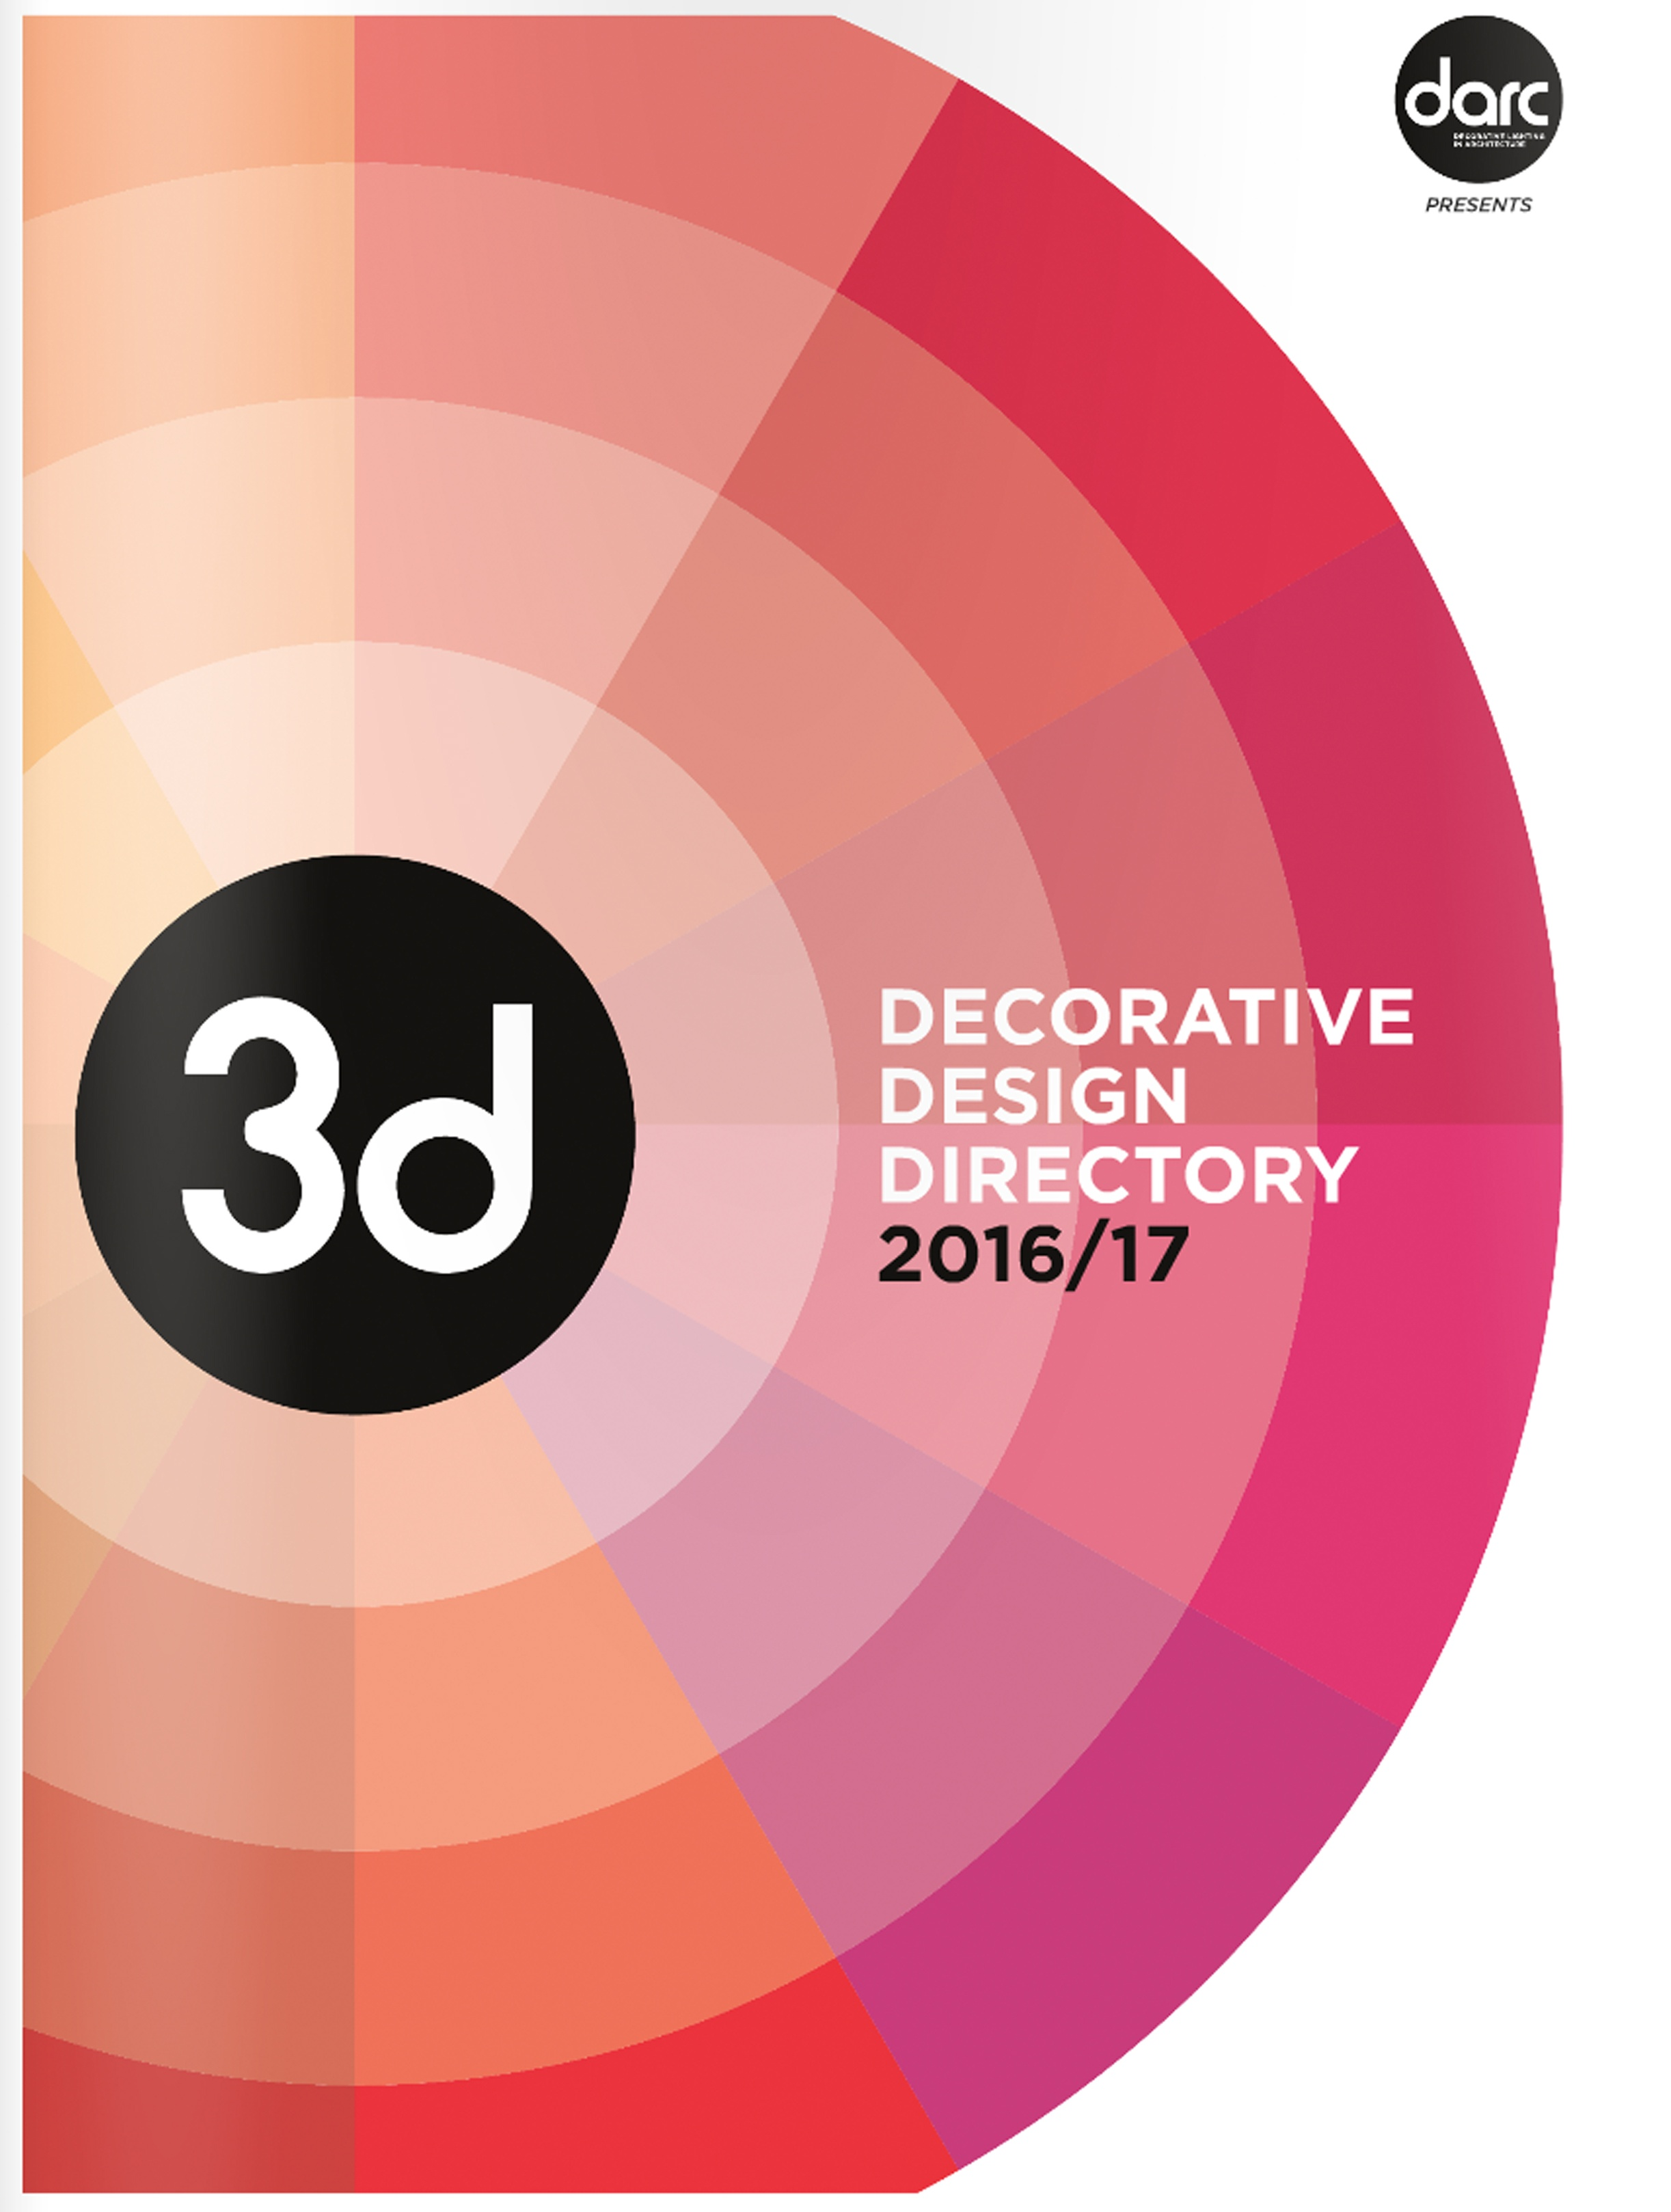 40-1_Darc_Decorative_Design_Directory-Cover.jpg